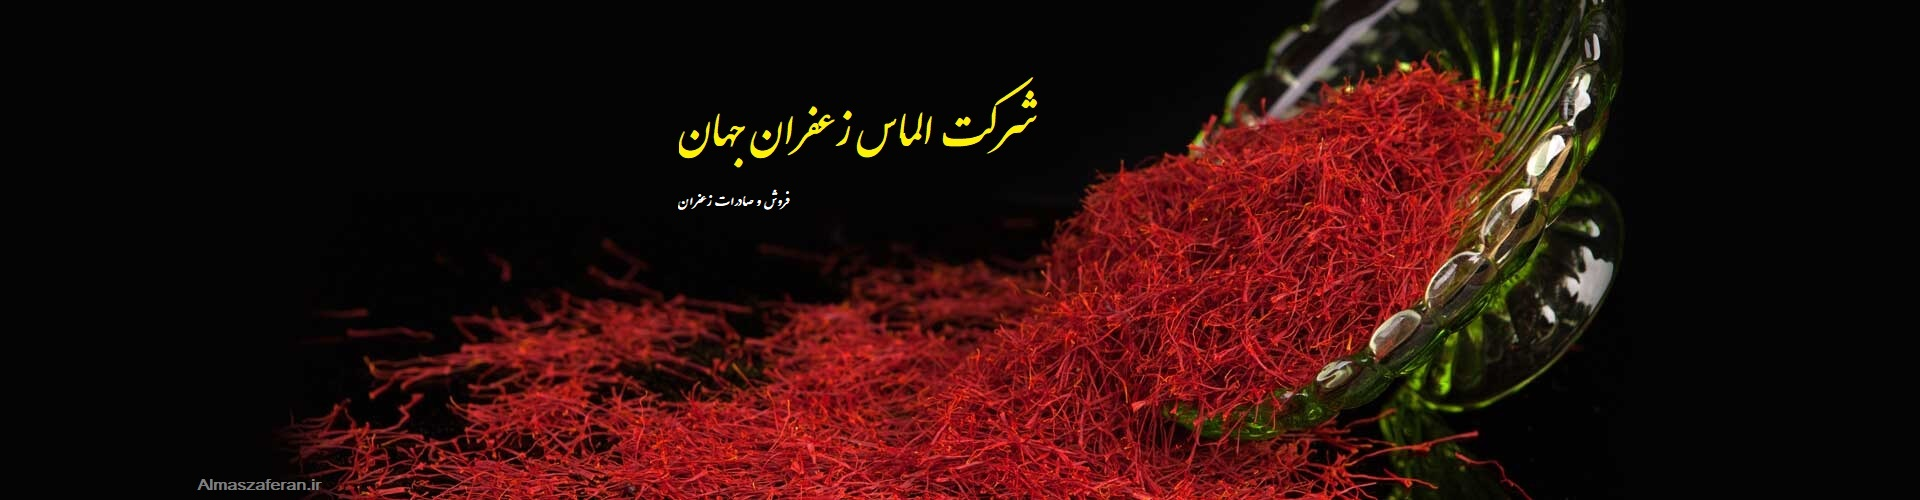 Purchase price of major saffron